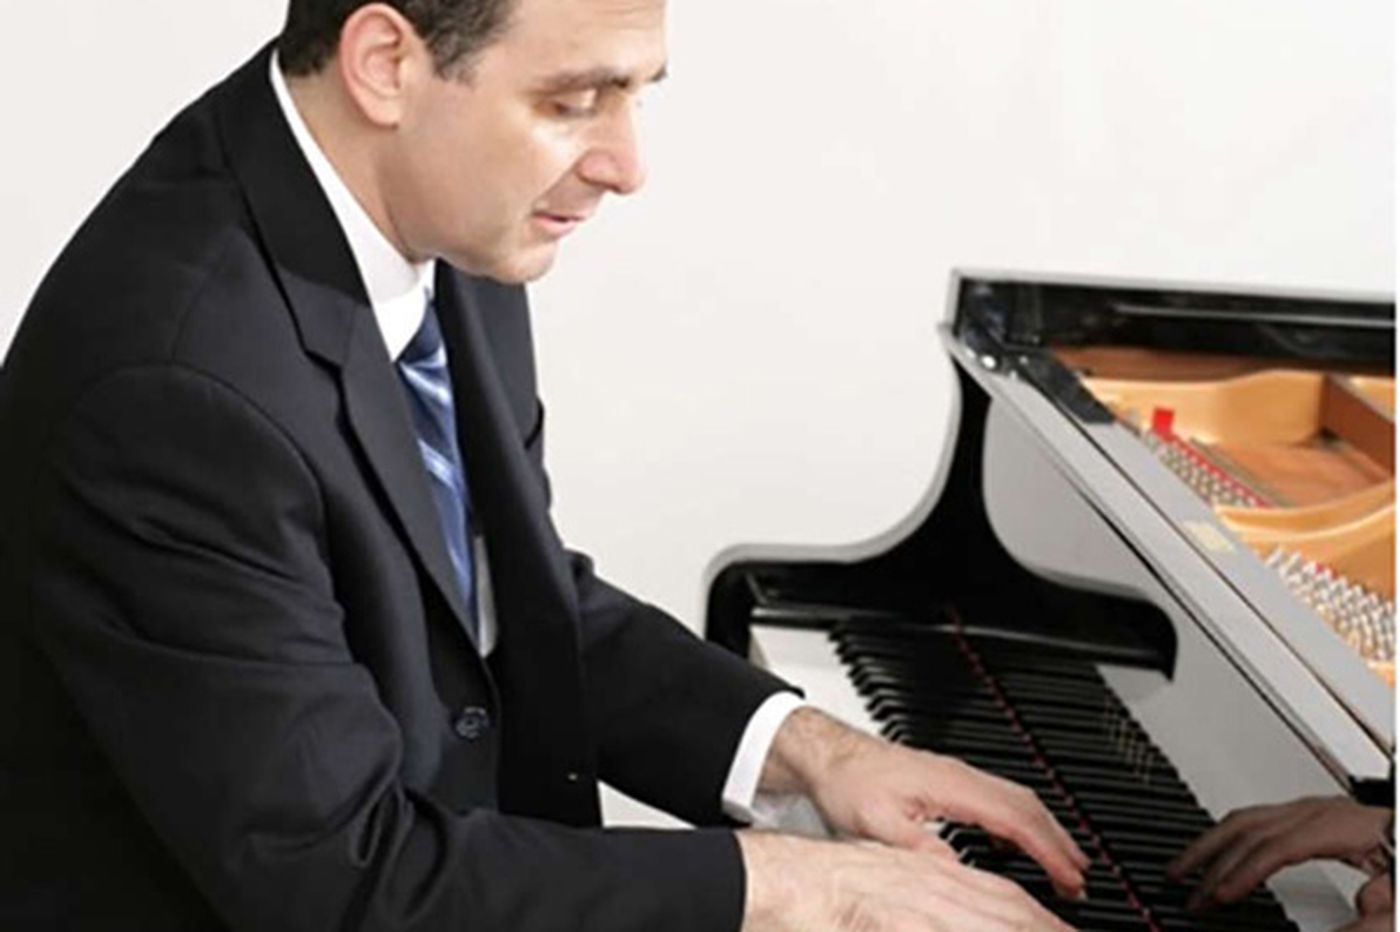 George Gershwin, possible ADHD sufferer, a 'life saved by music'